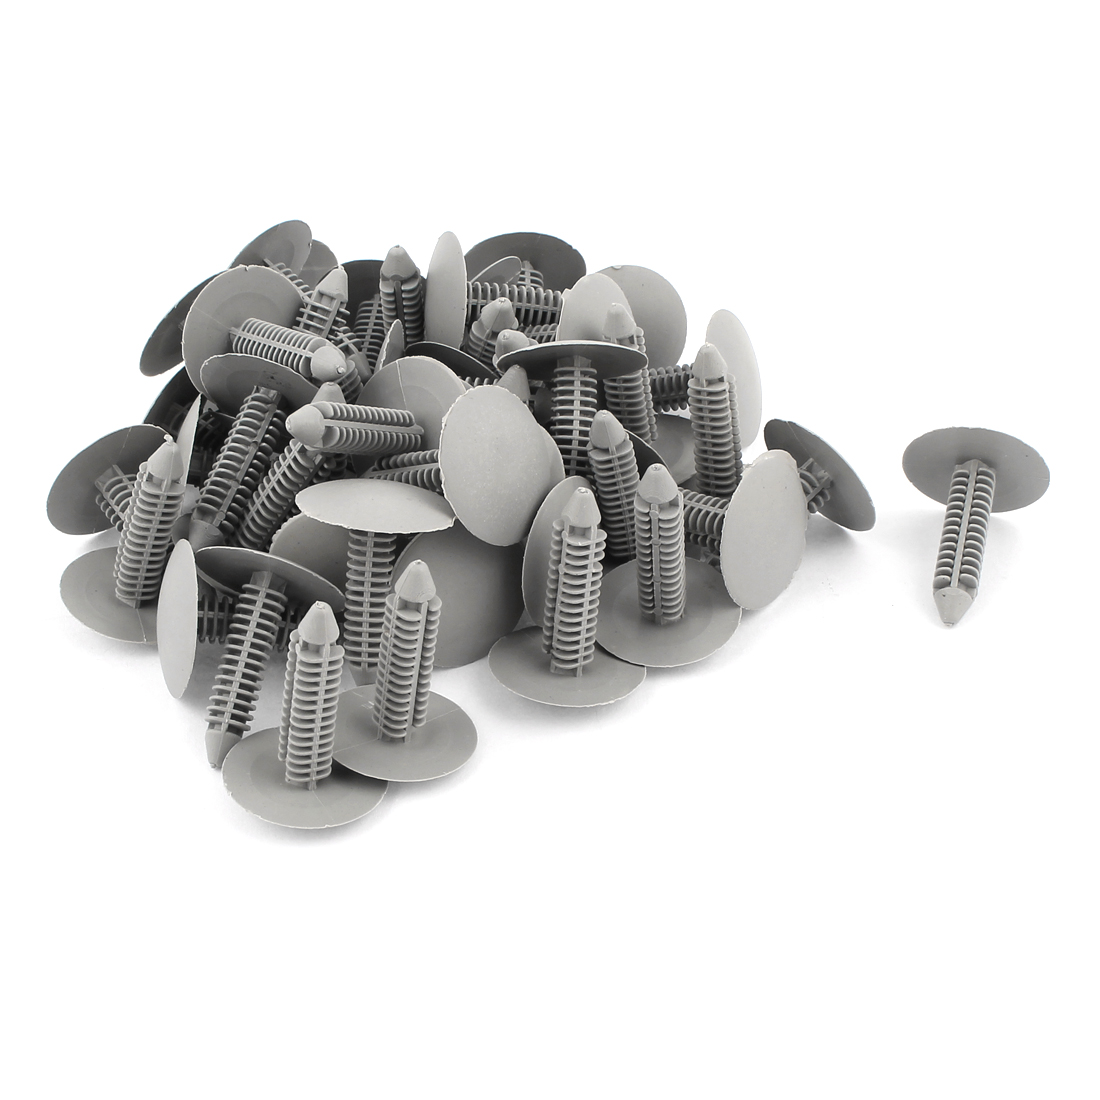 50 Pcs Gray Car 7mm Hole Dia Plastic Rivets Fastener Fender Bumper Push Pin Clips